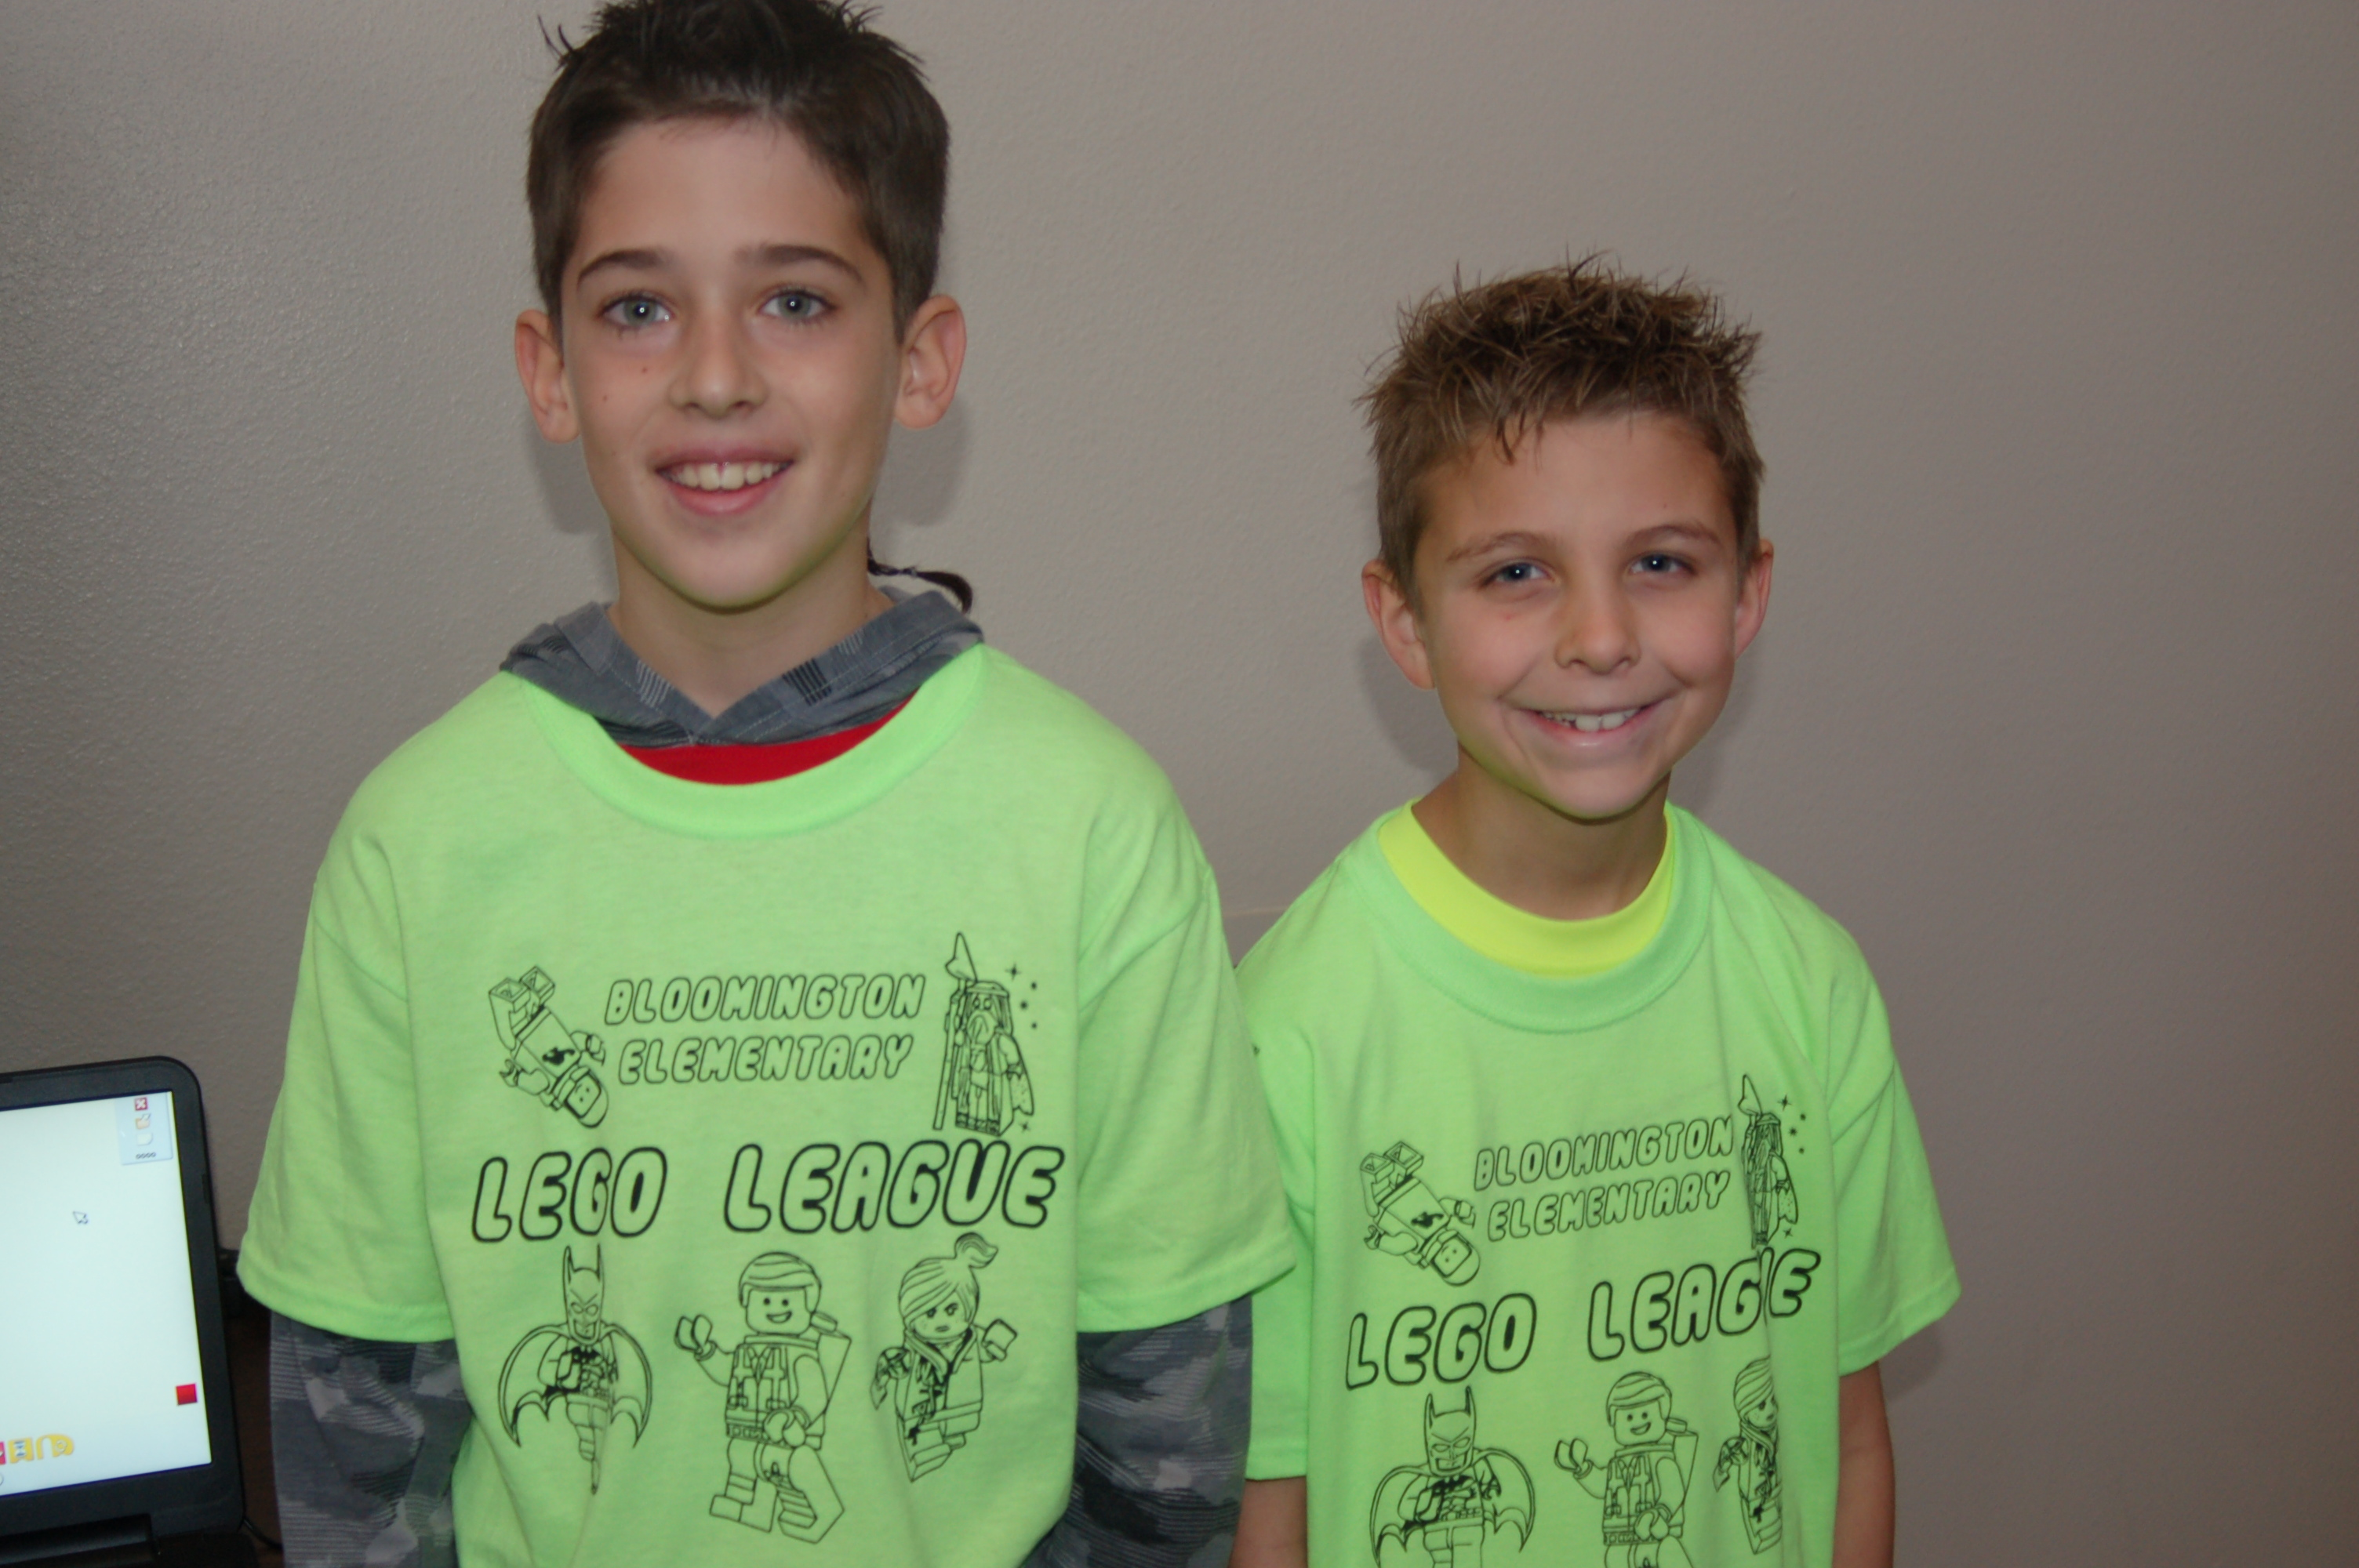 From left, Logan Evans and Bode Hafen smile for a photo and explain their project at the Lego robotics competition, St. George, Utah, Jan. 10, 2015 | Photo by Hollie Reina, St. George News